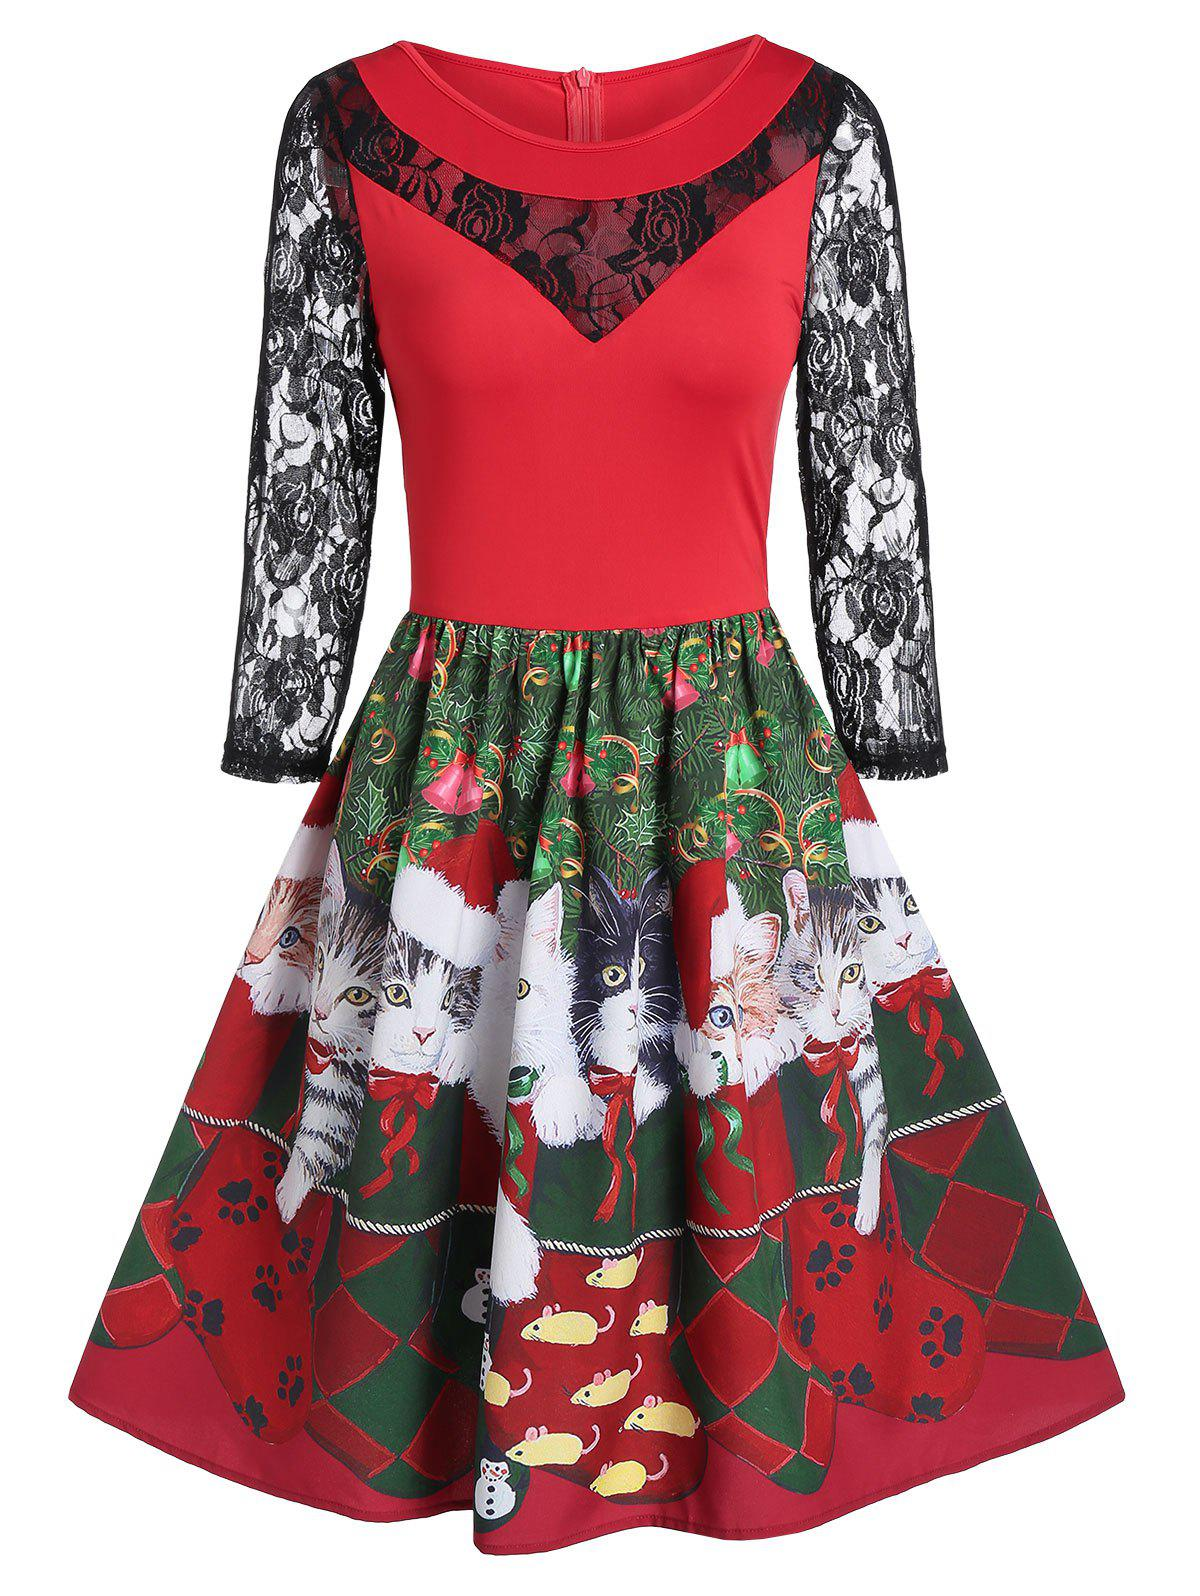 Latest Lace Insert Fit And Flare Animal Print Christmas Dress